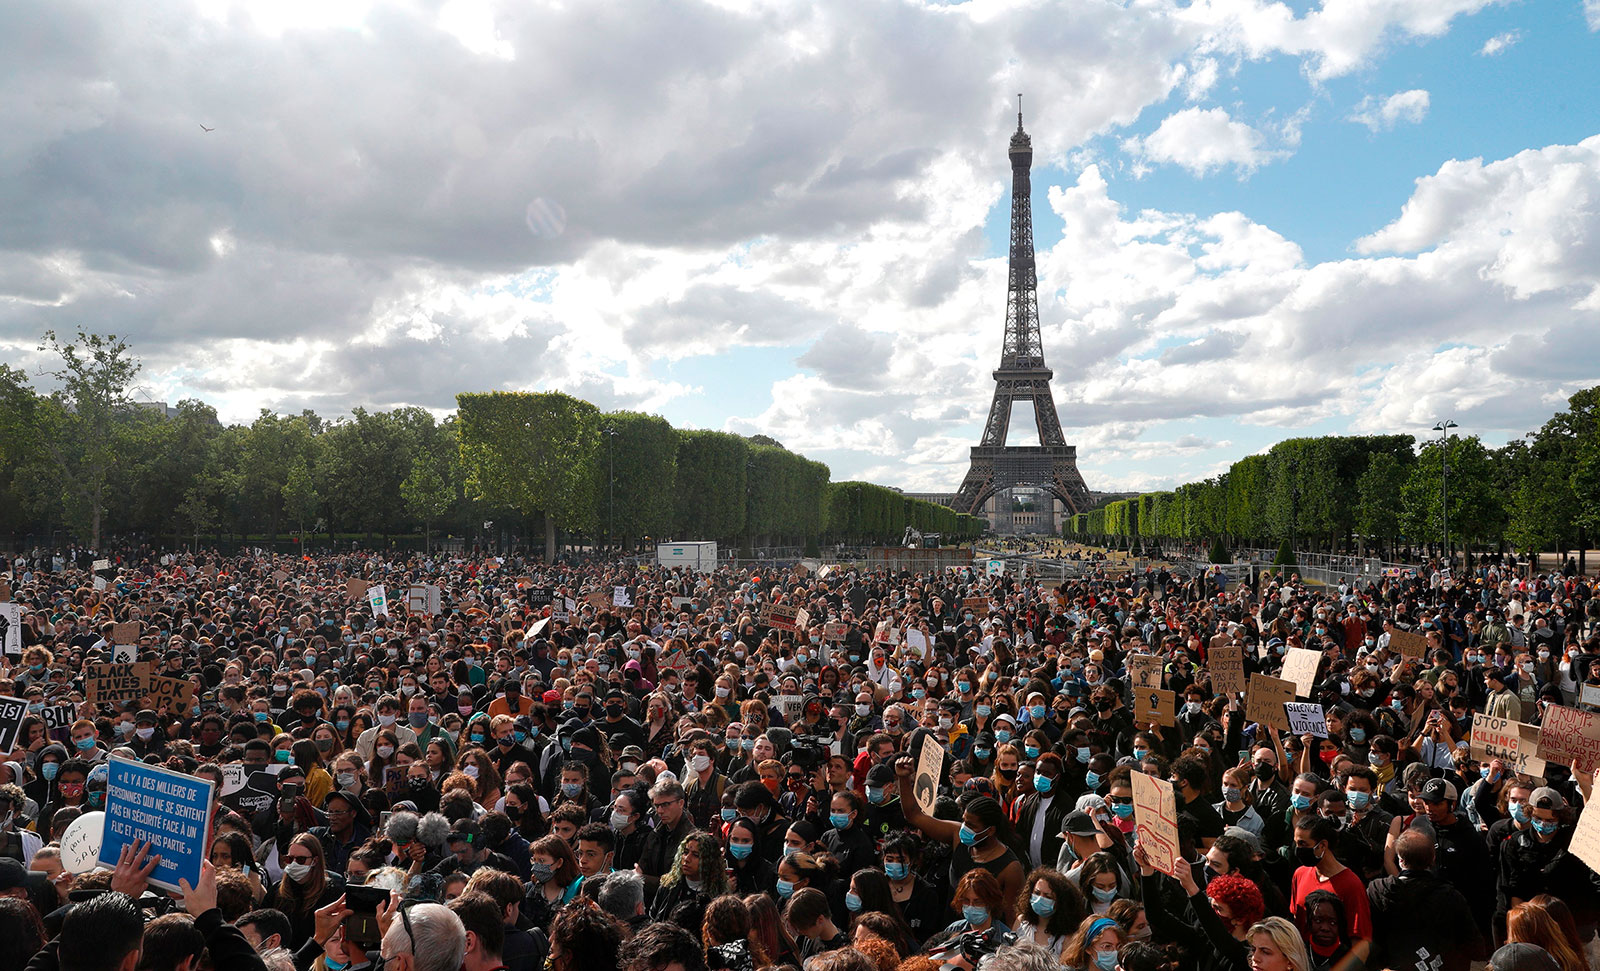 People gather on Champ de Mars in front of the Eiffel Tower in Paris on June 6.